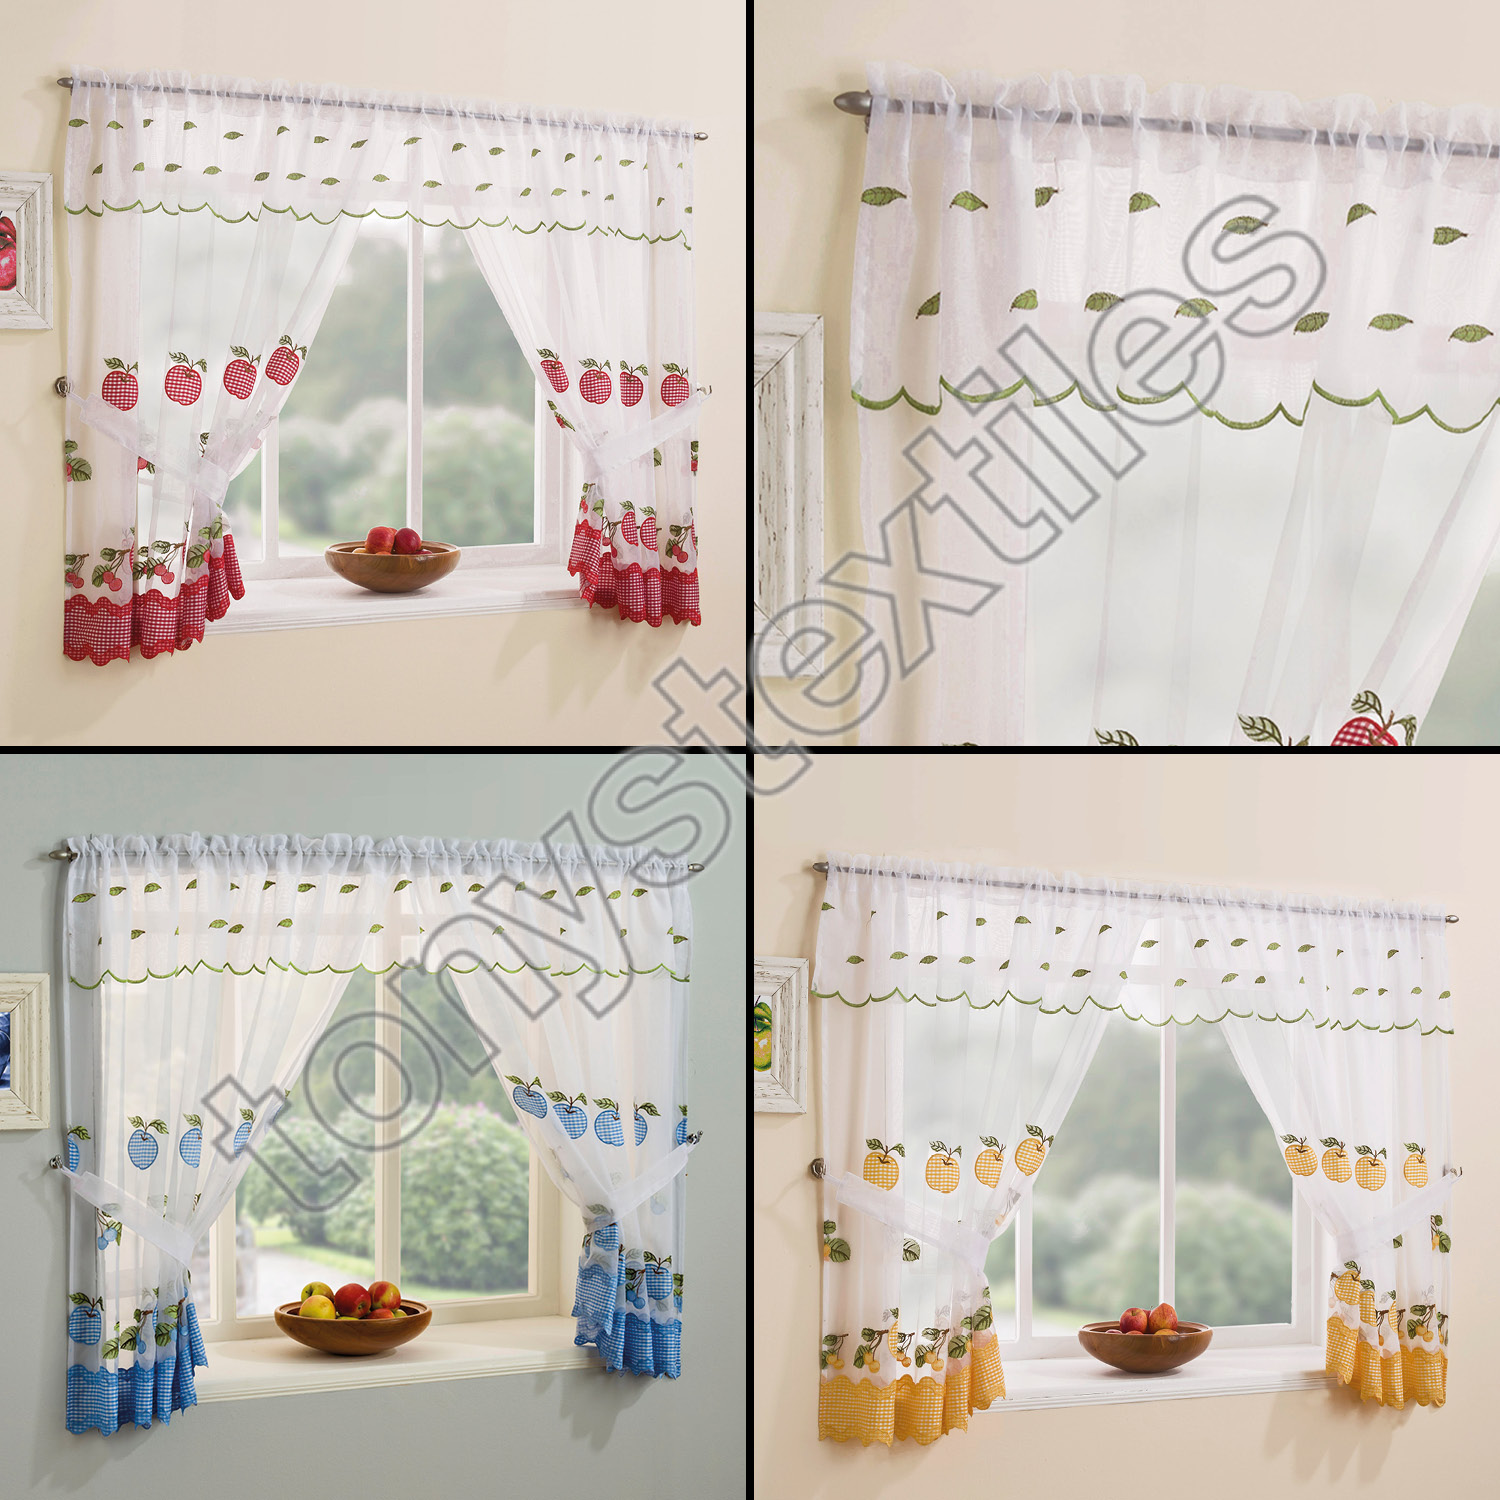 WINCHESTER KITCHEN WINDOW SET CURTAINS & TIE BACKS